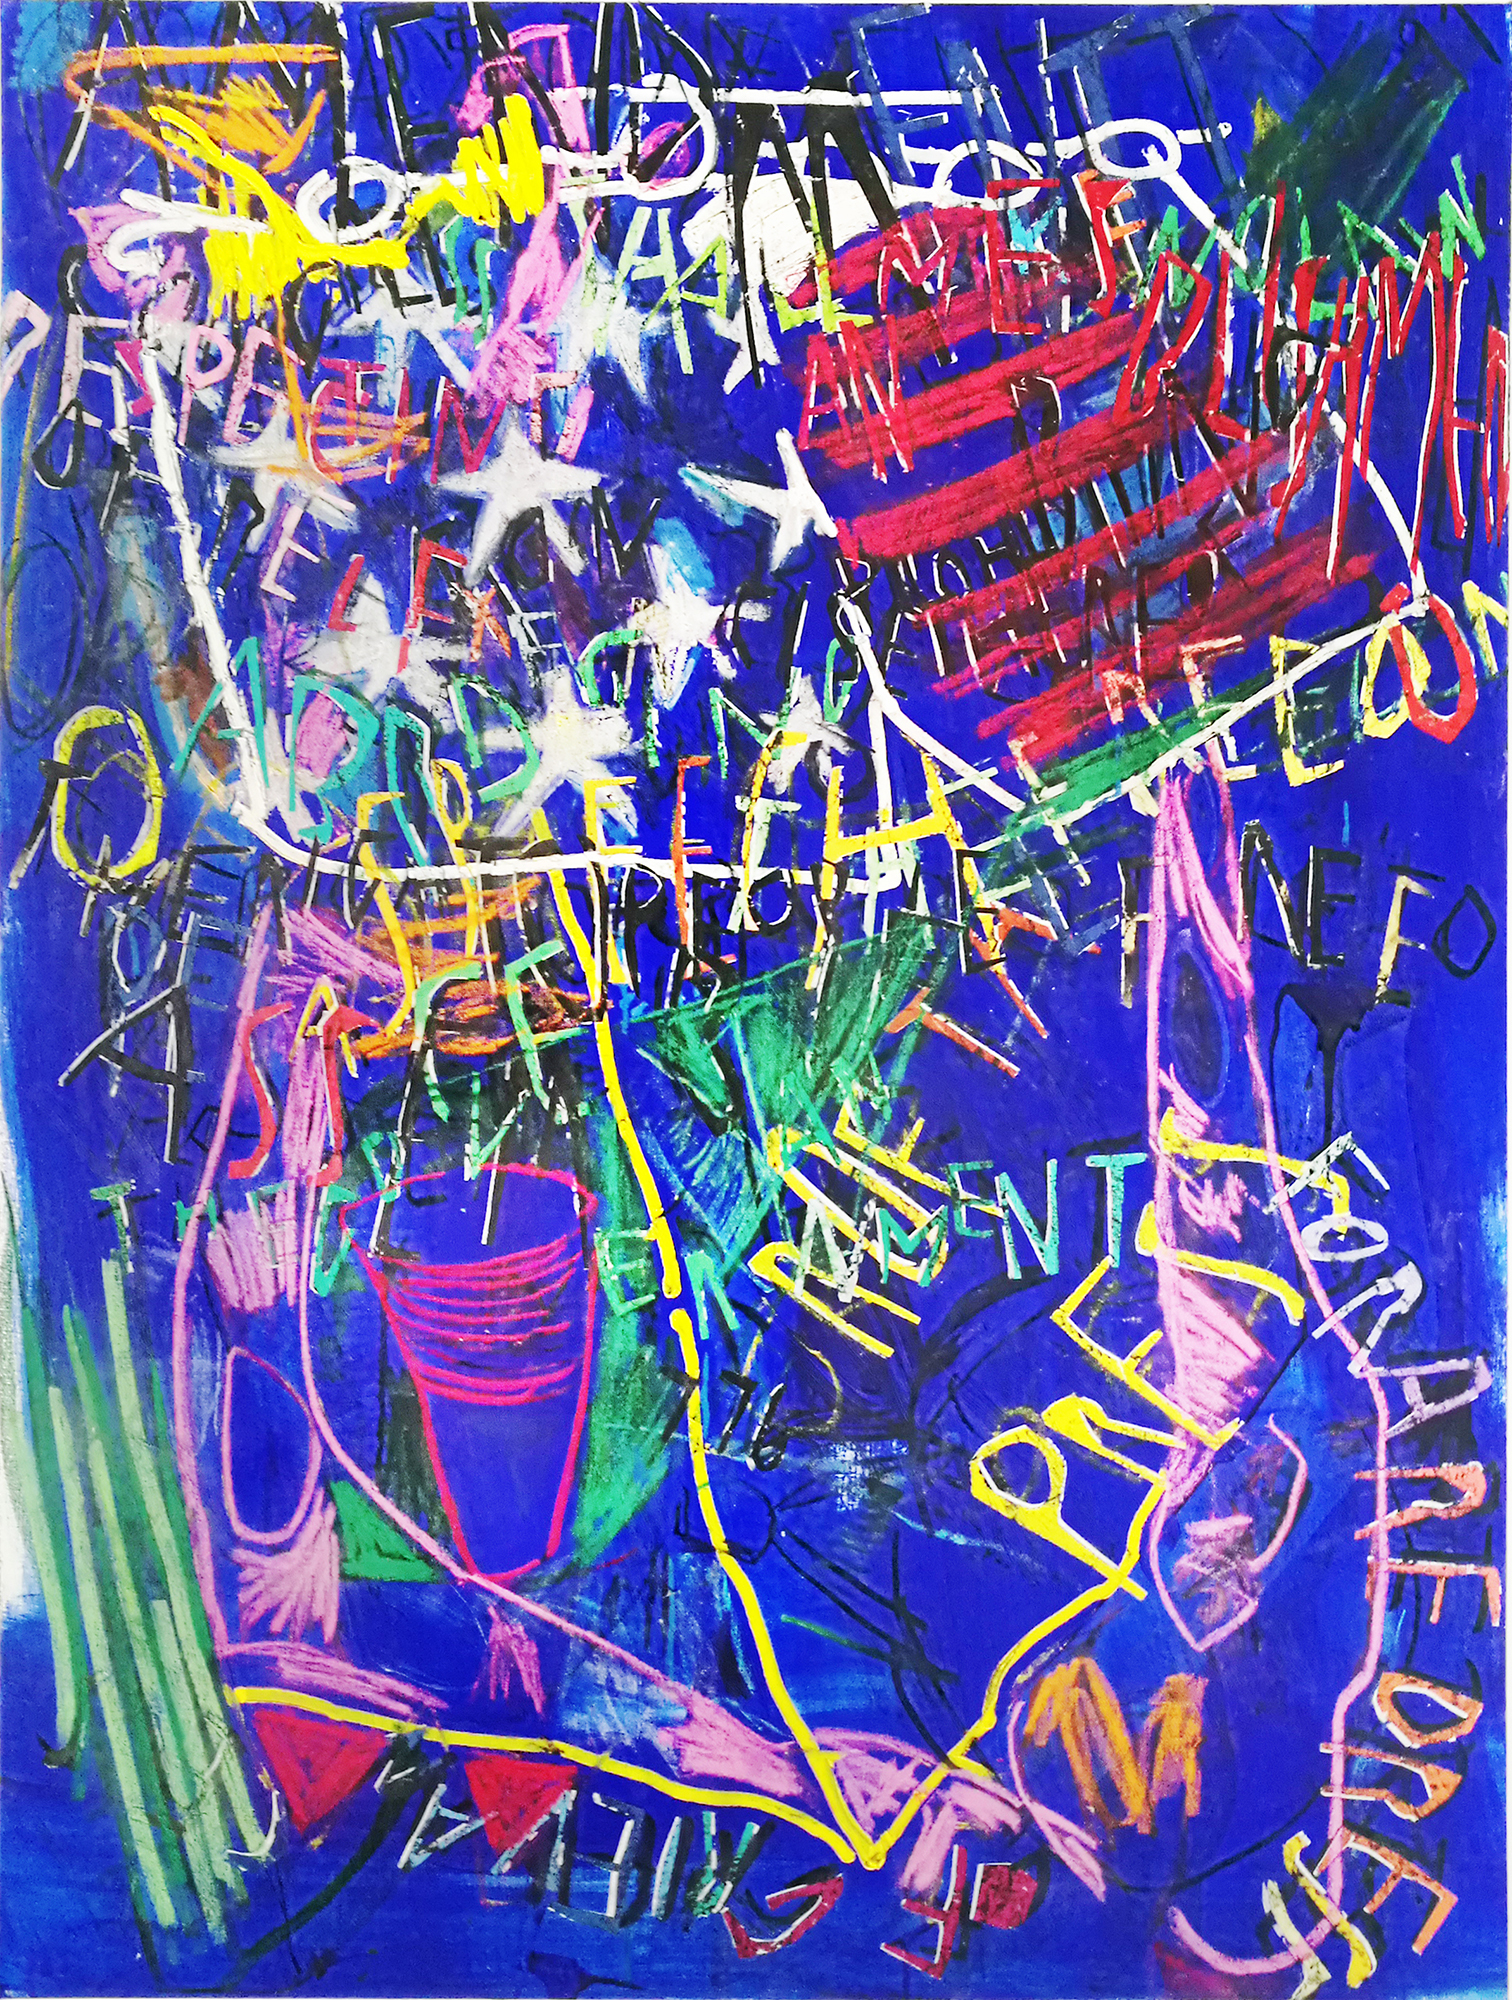 Despina Stokou_RGB affirmations (blue)_Oil and mixed media collage on canvas_123x91cm _2018.jpg